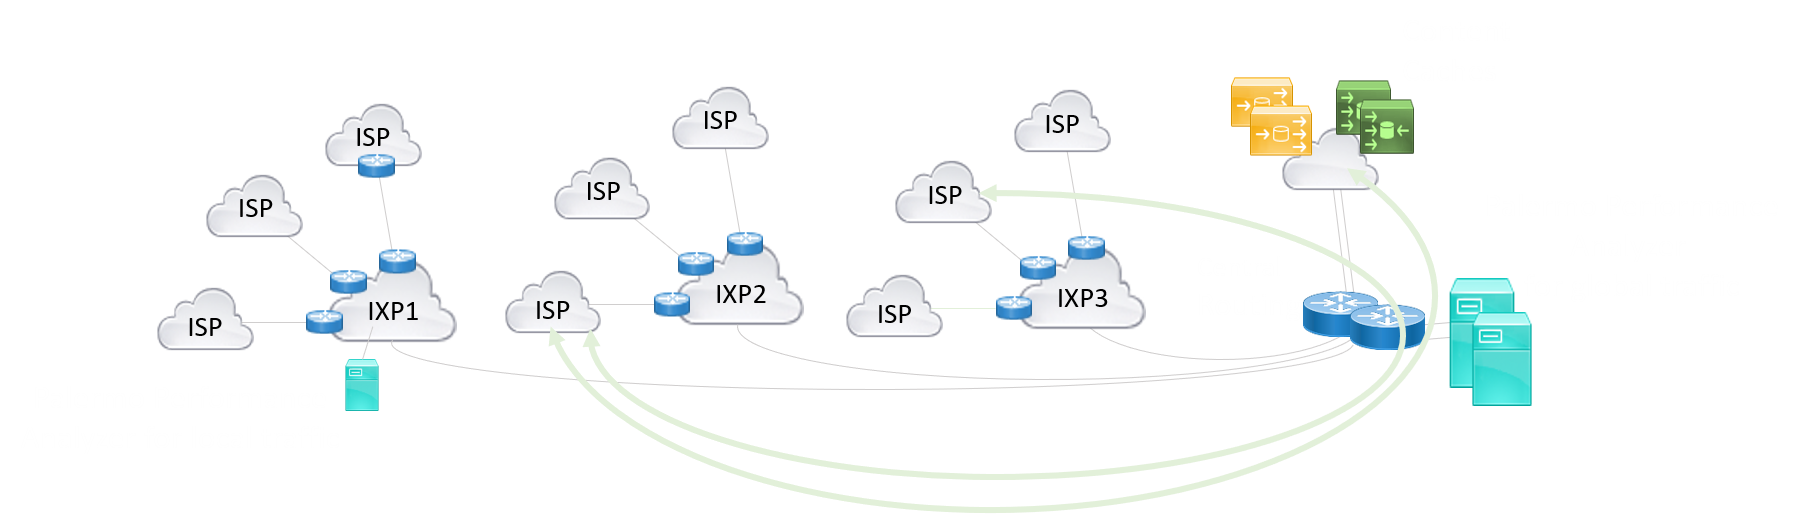 Network of interconnected IXP's